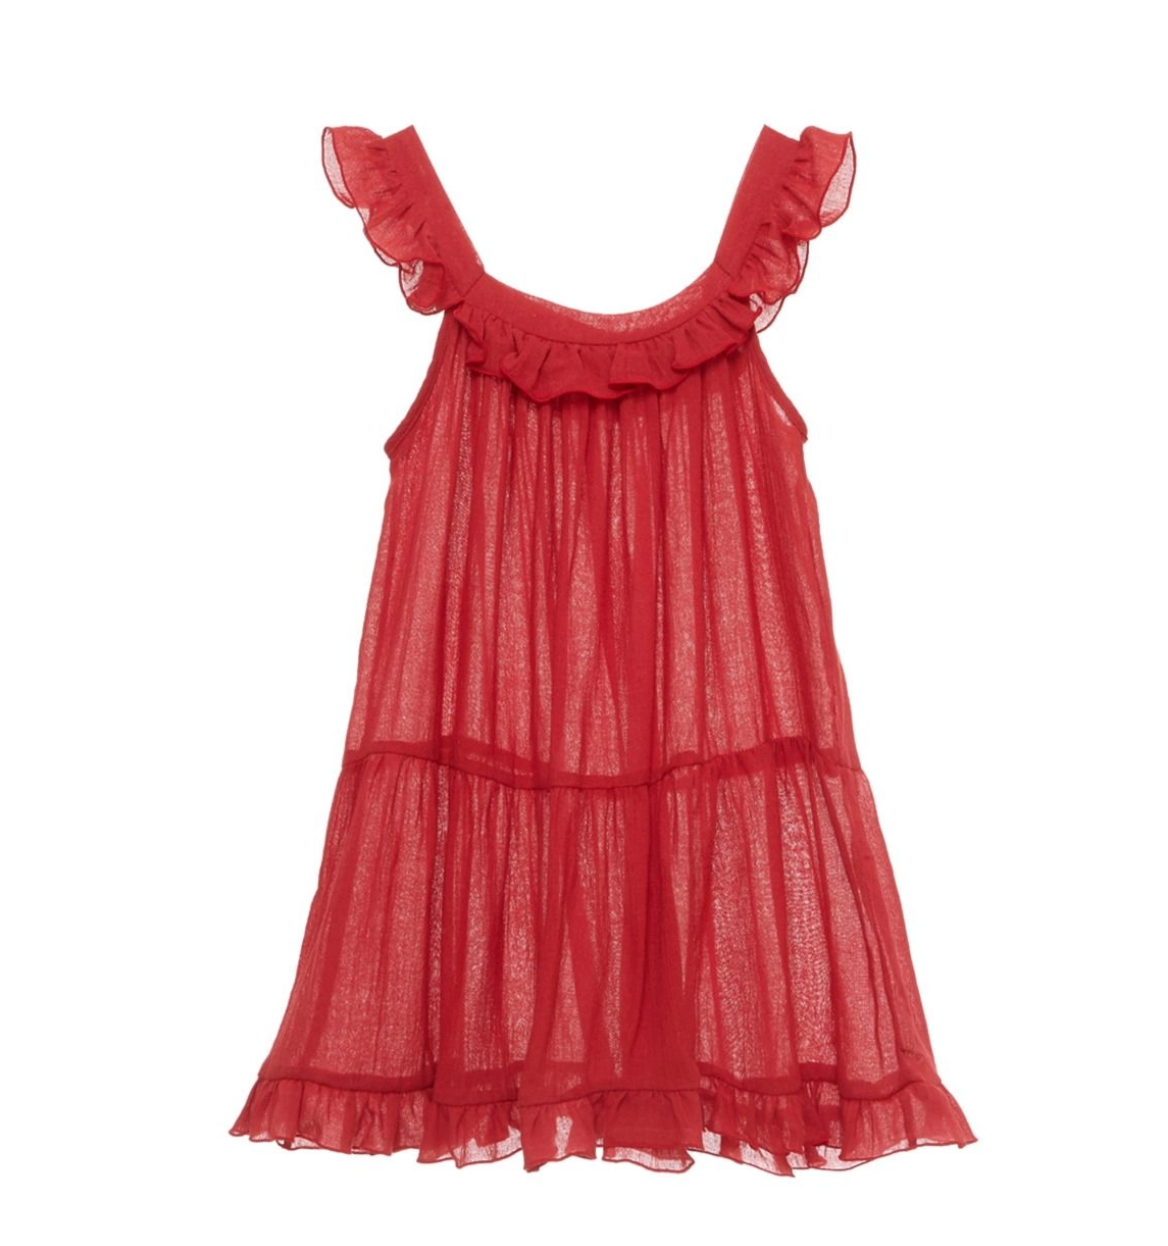 Eberjey Summer of Love Izzy Dress - Chilli Pepper